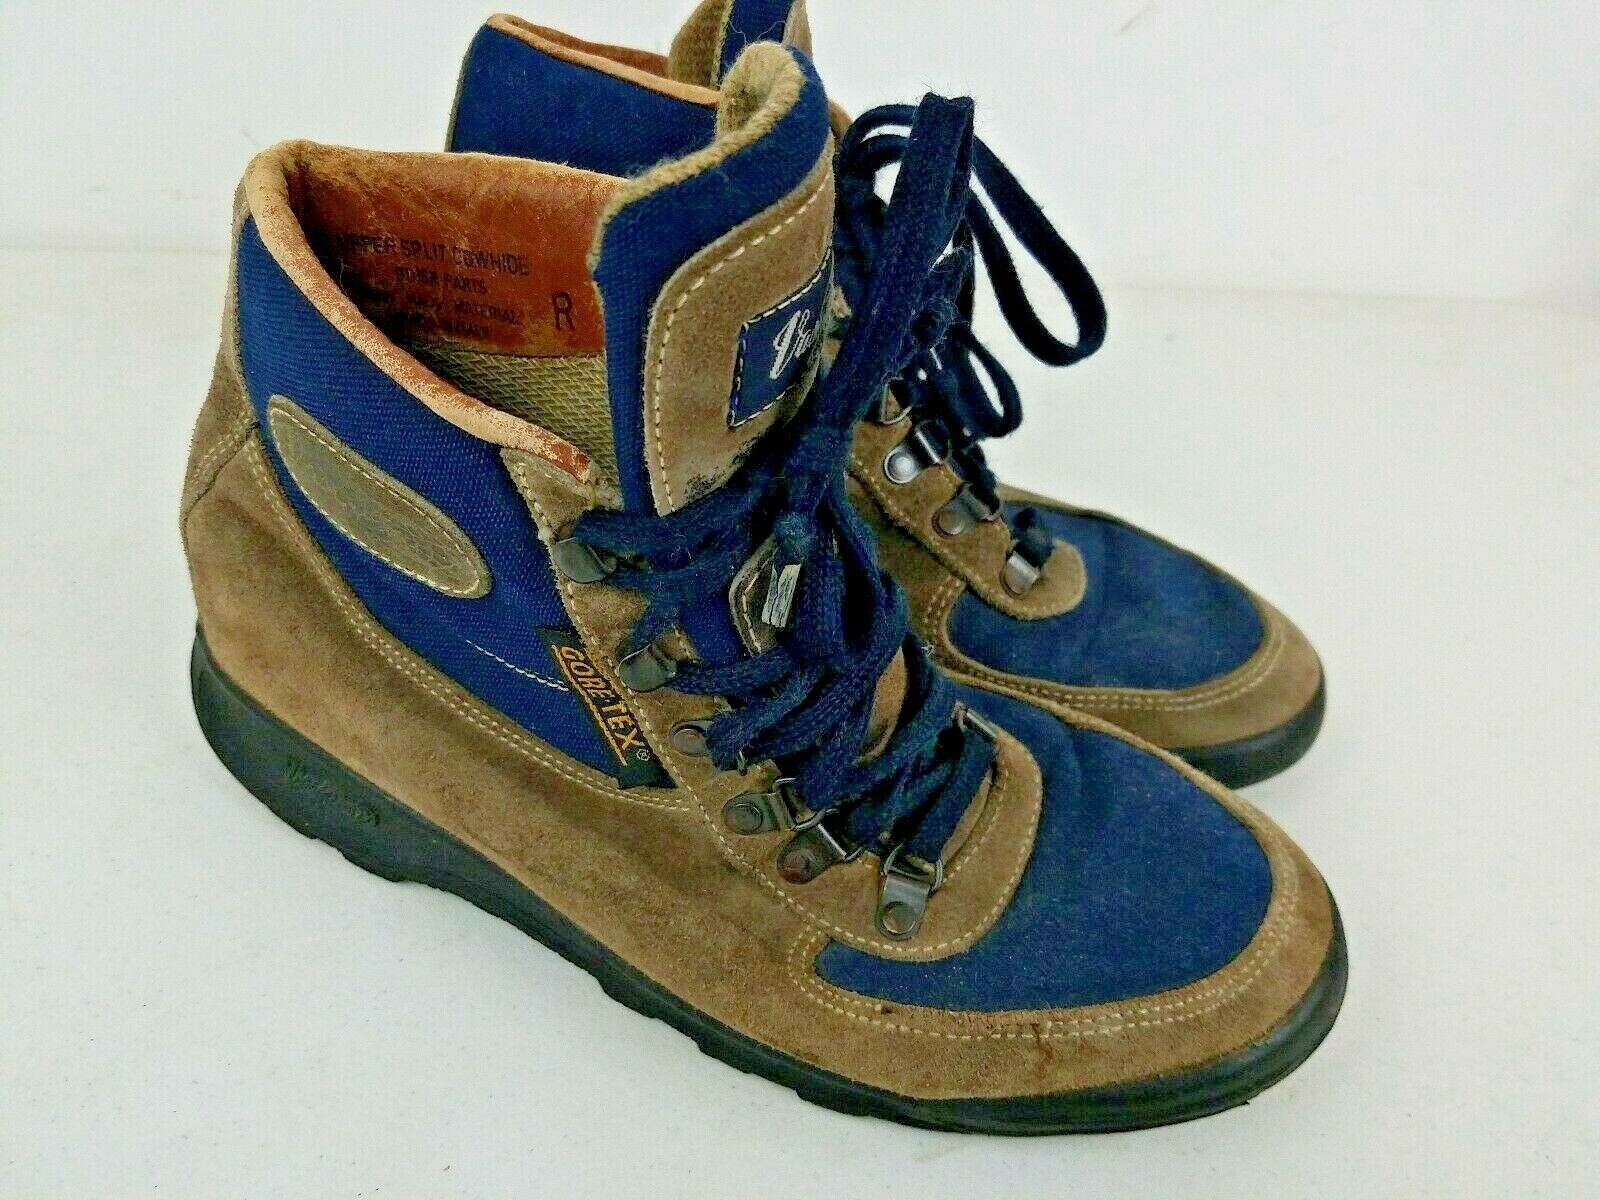 49677405f69 Vasque Gore-Tex Navy Blue Brown Genuine and 41 similar items